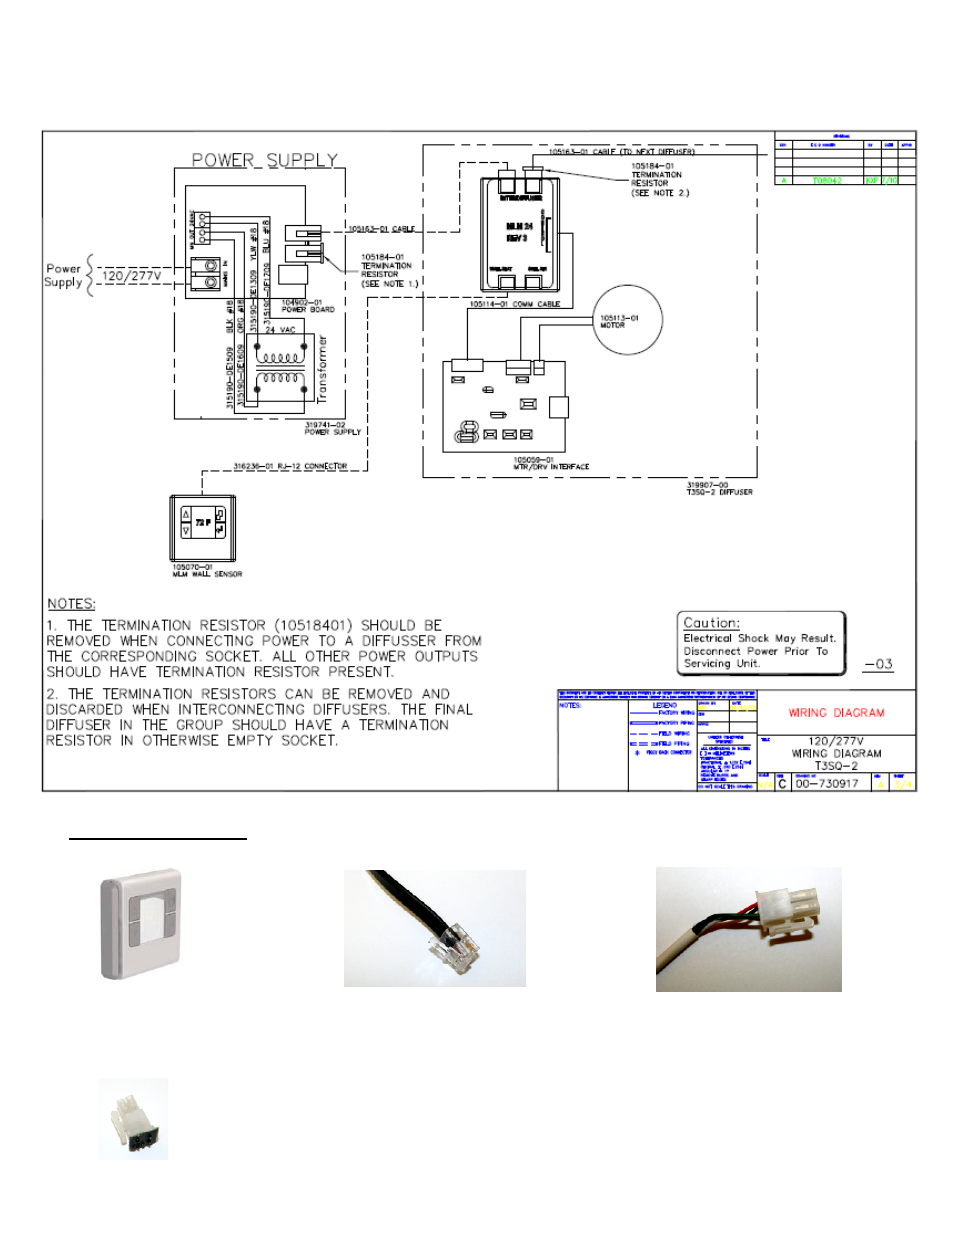 titus t3sq 2 iom user manual page 7   8 power supply wire colors